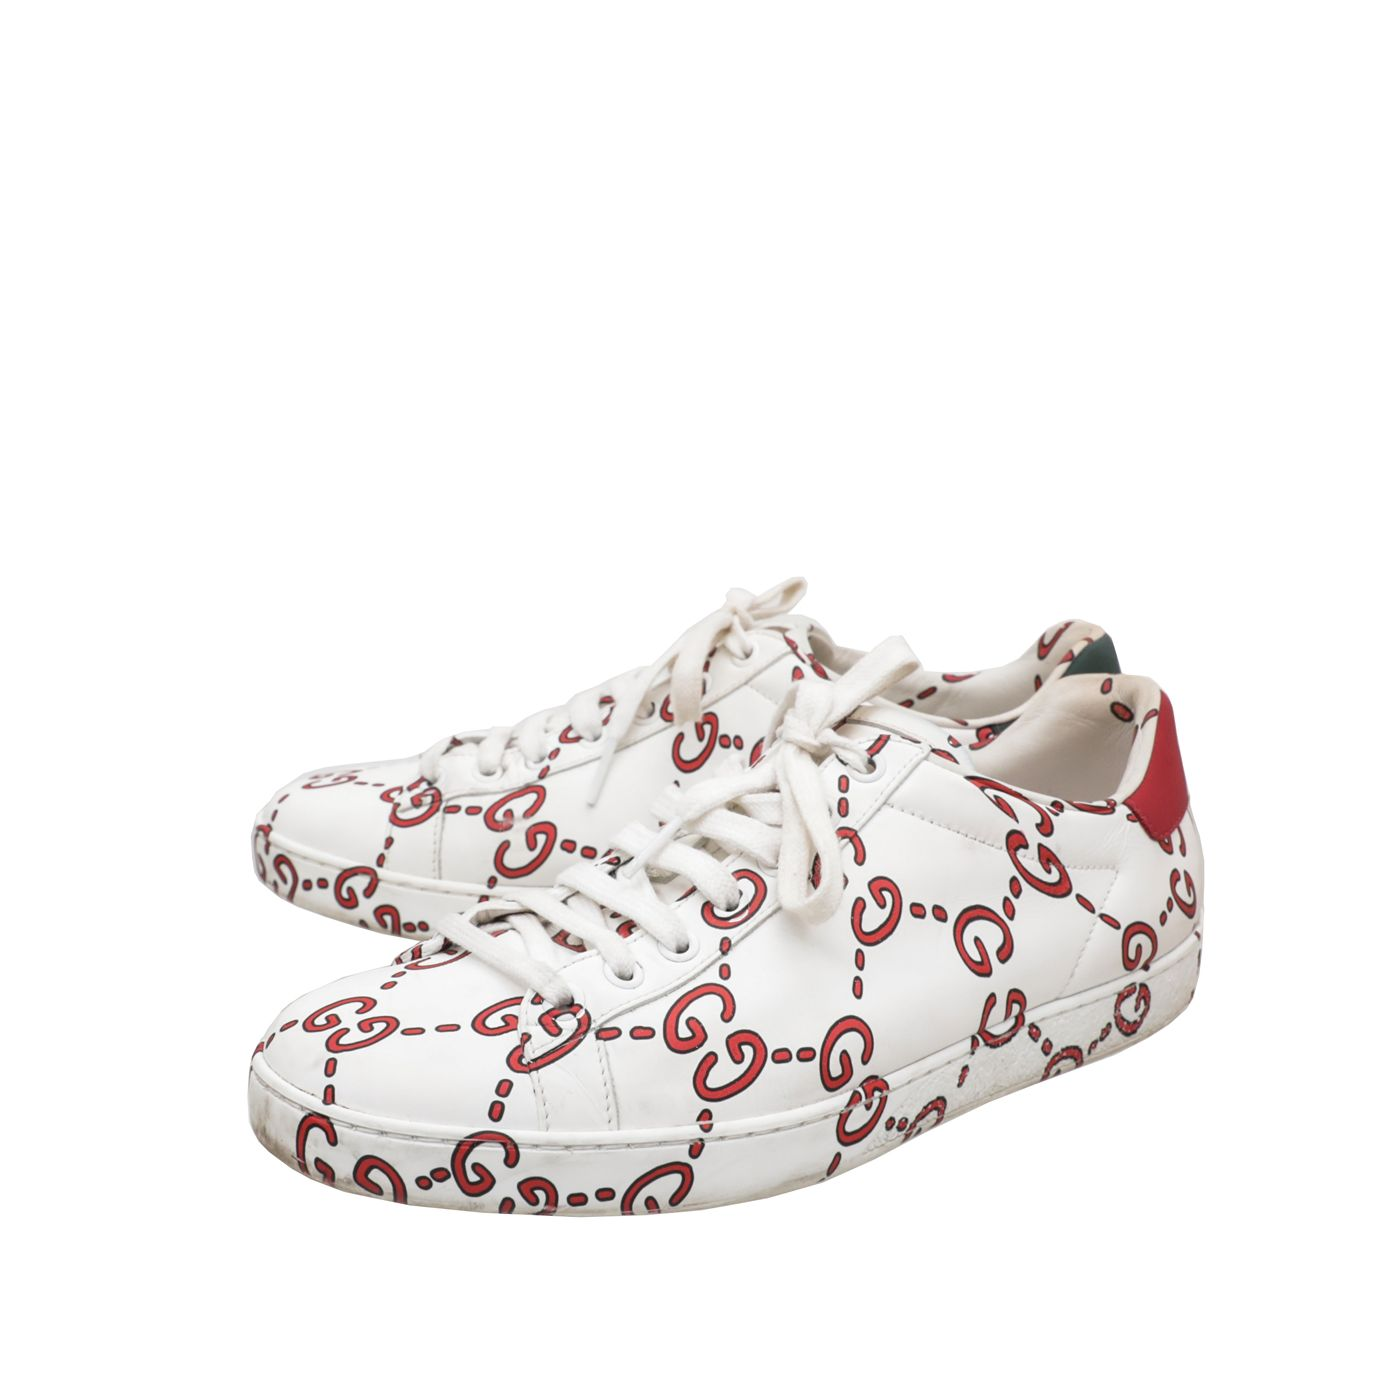 Gucci White GG Print Ace Sneakers 39